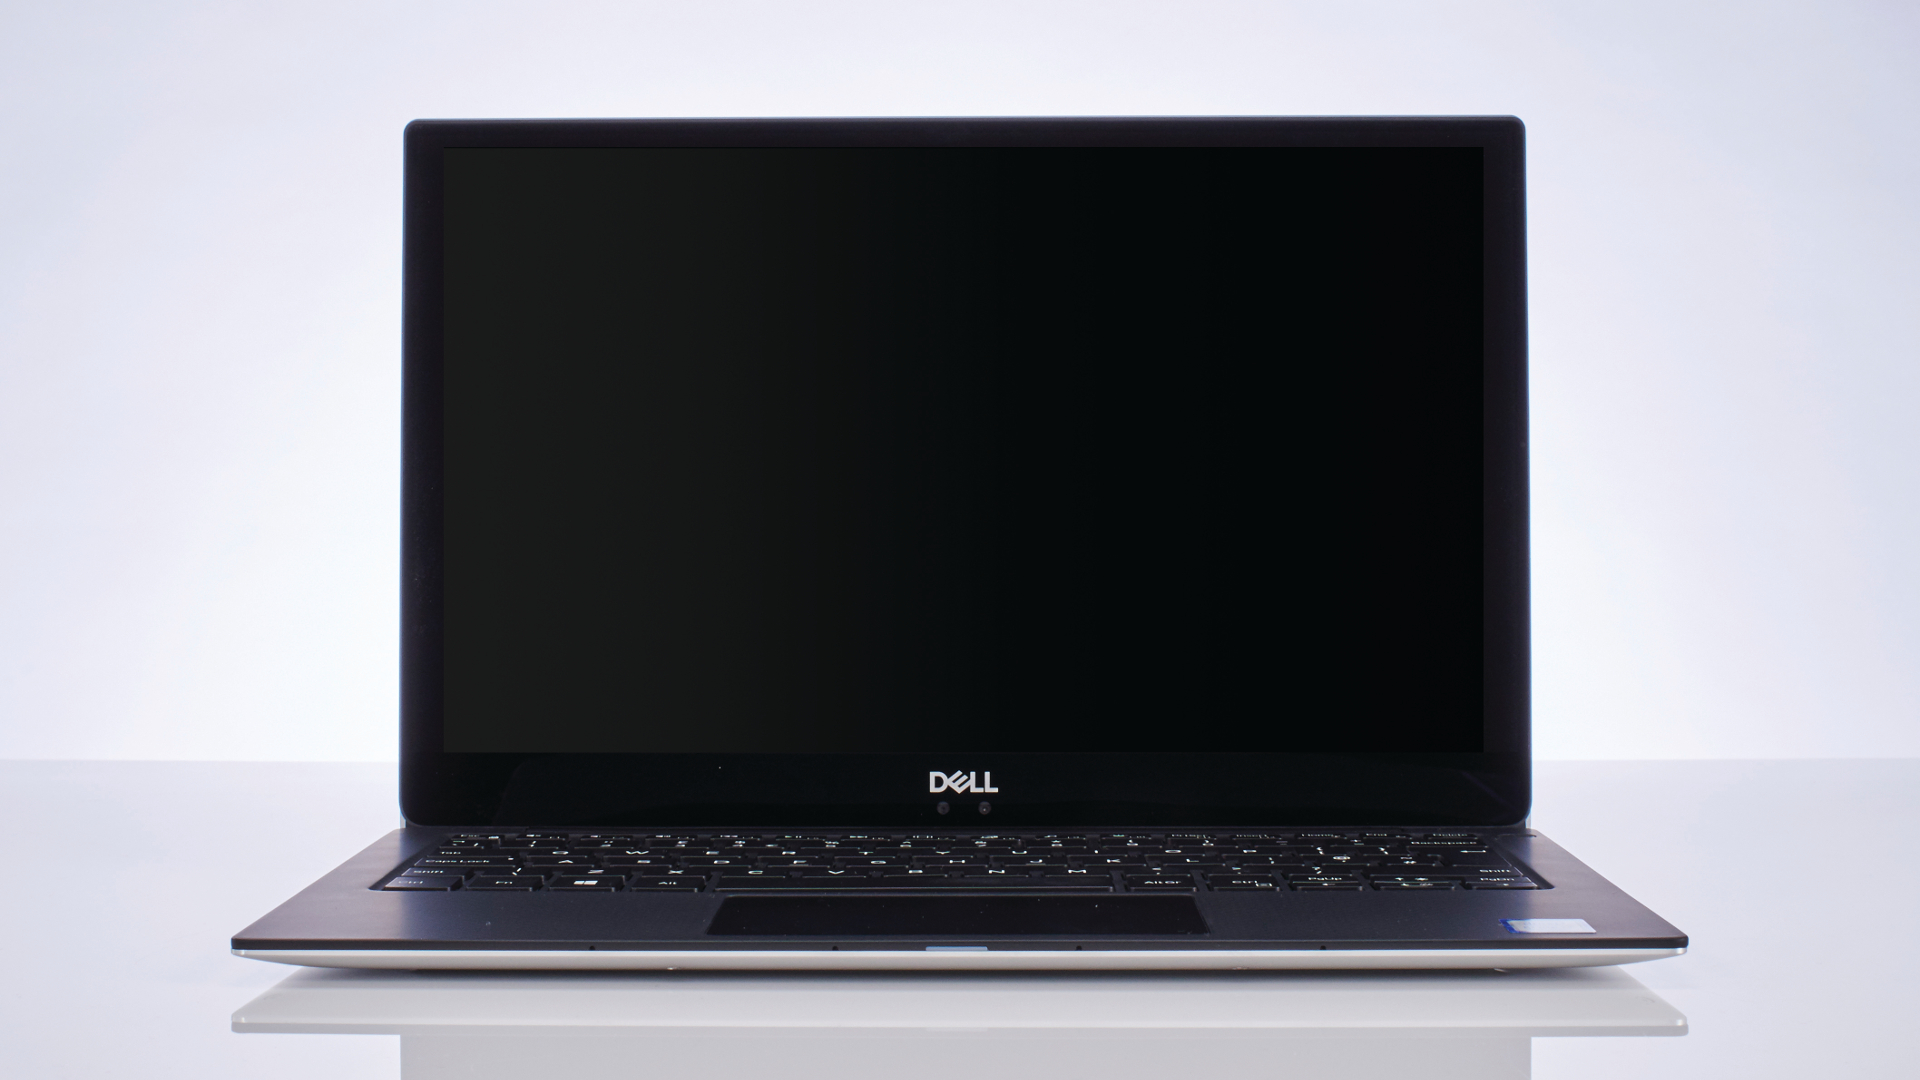 Dell XPS 13 Developer Edition 9370